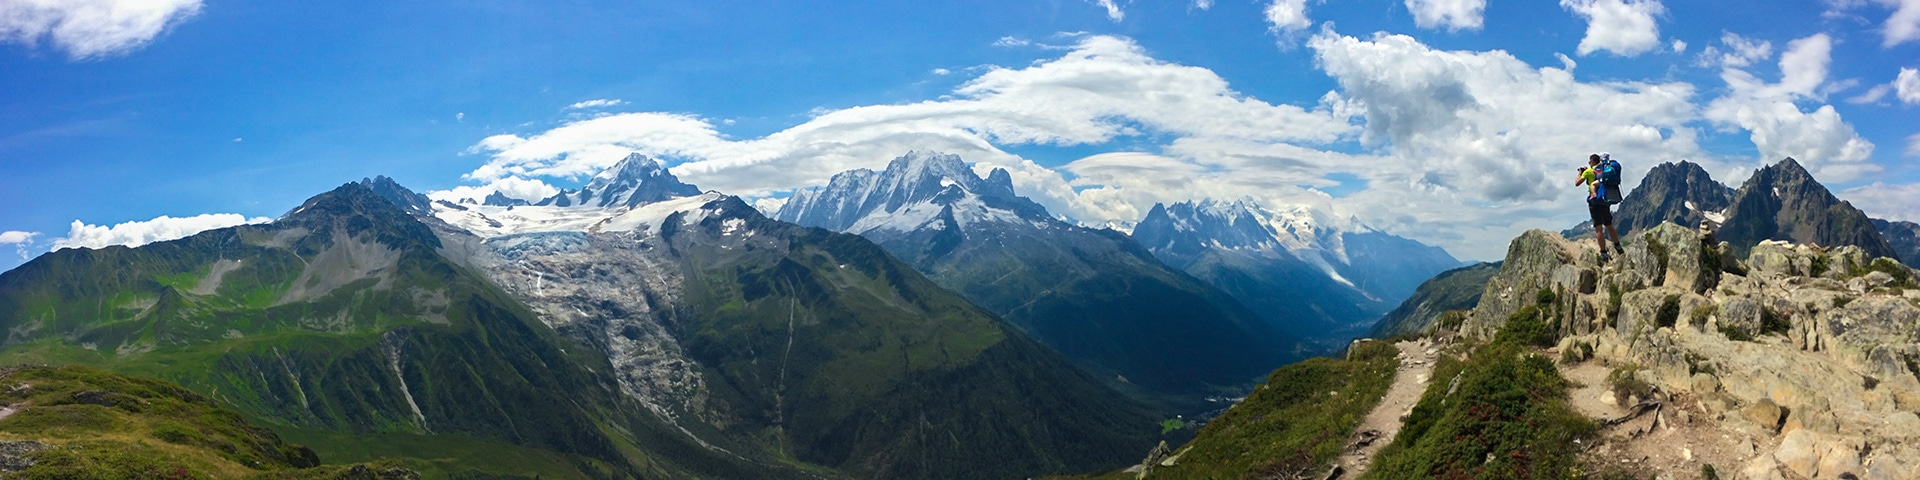 Best hikes from Chamonix, France